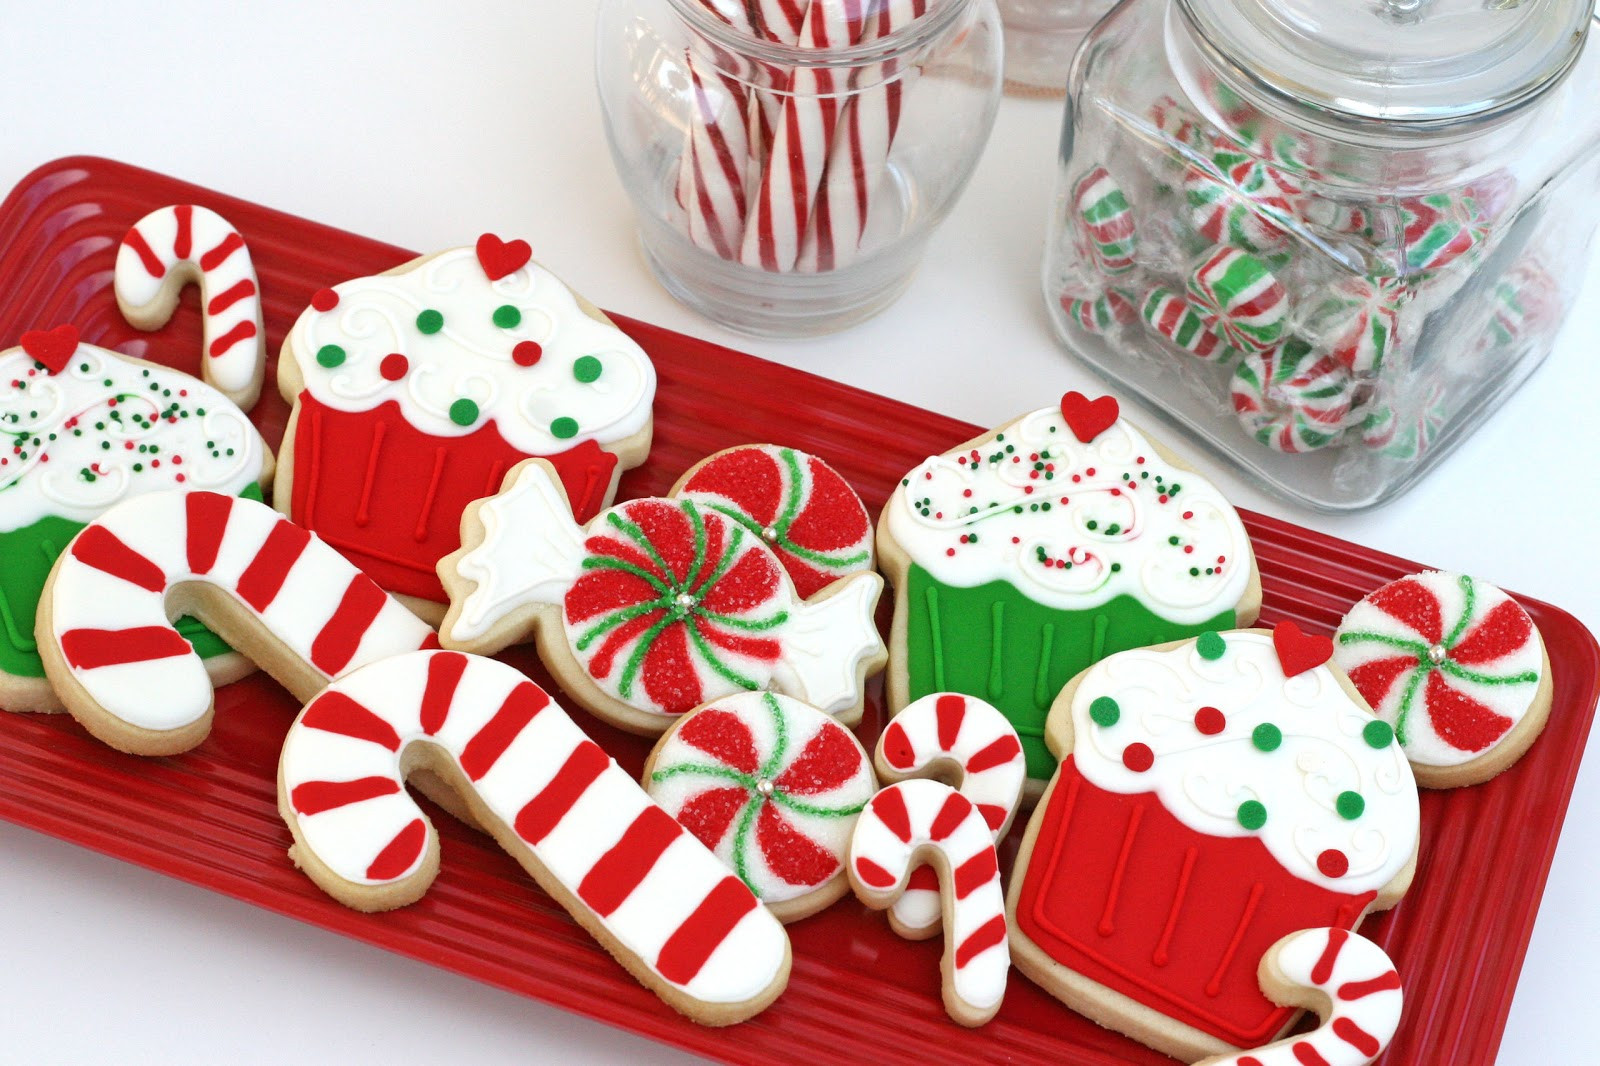 Cute Christmas Baking Ideas  Christmas Cookies Galore Glorious Treats